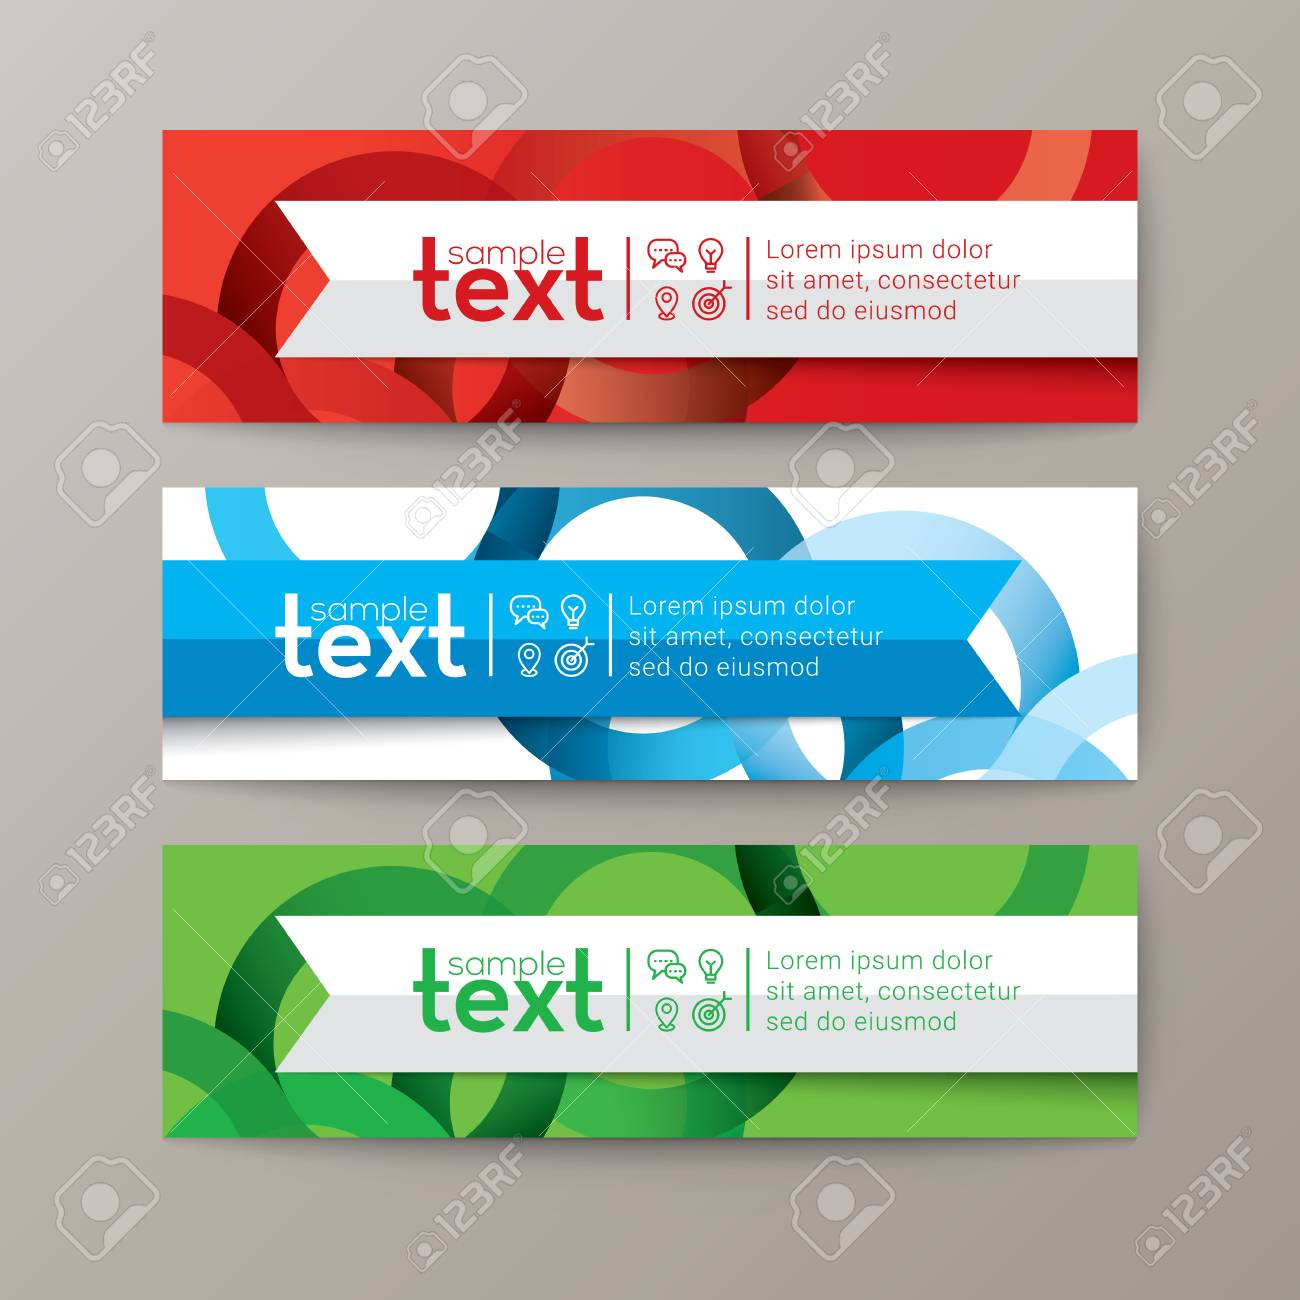 Set of modern design web banners template with colorful abstract circle background - 63444350